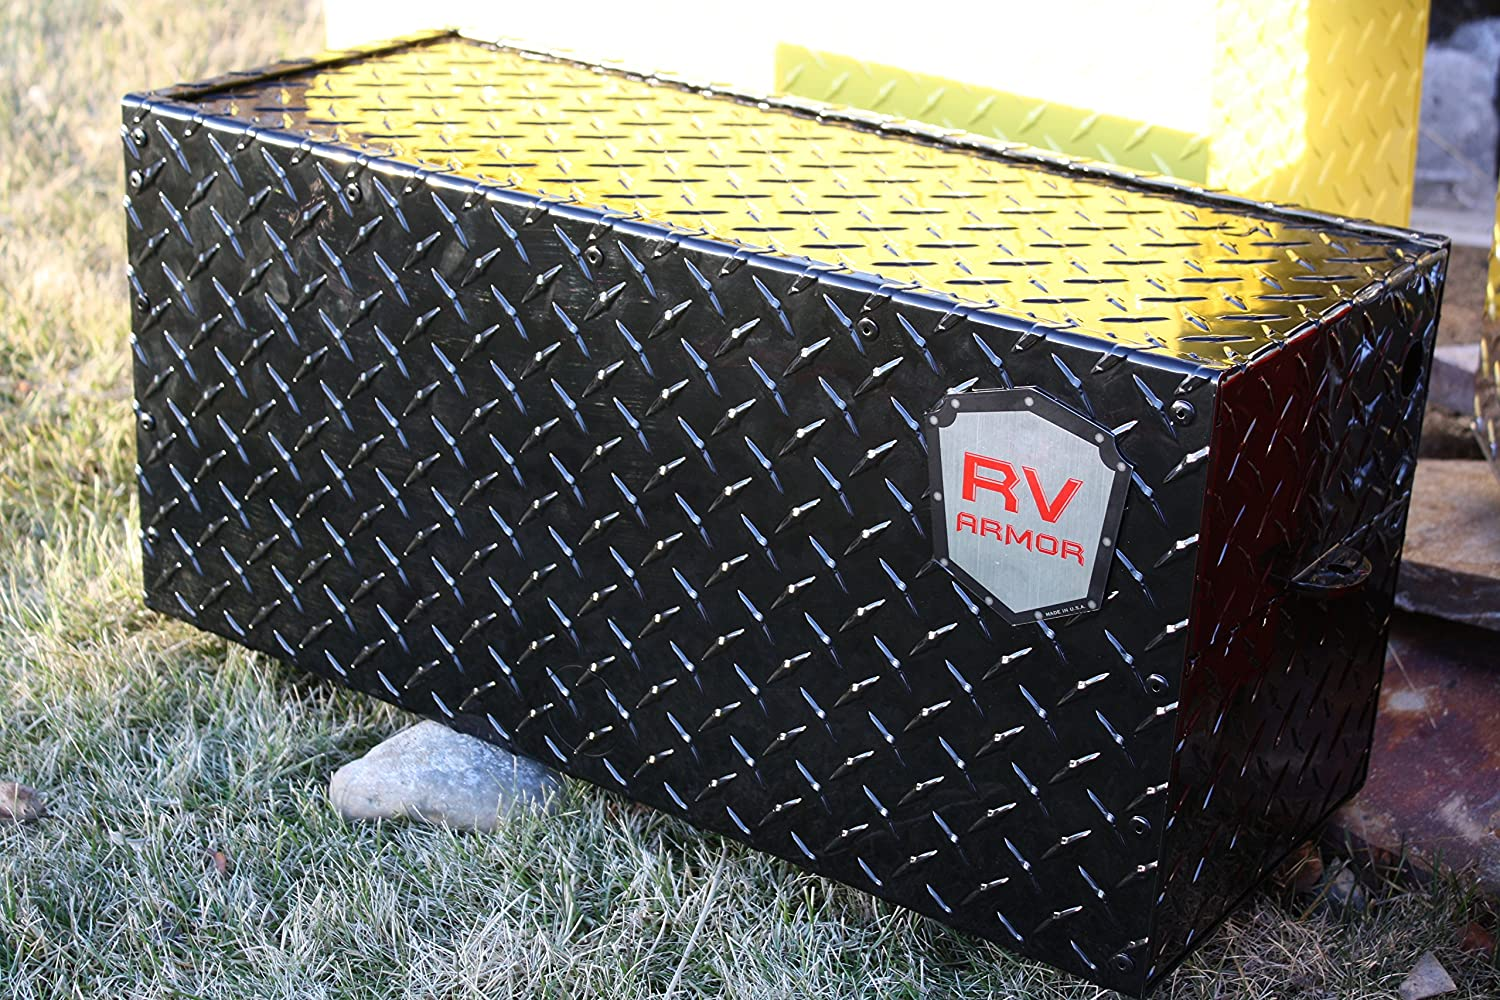 RV Armor RV Battery Lock Box - Aluminum Diamond Plate